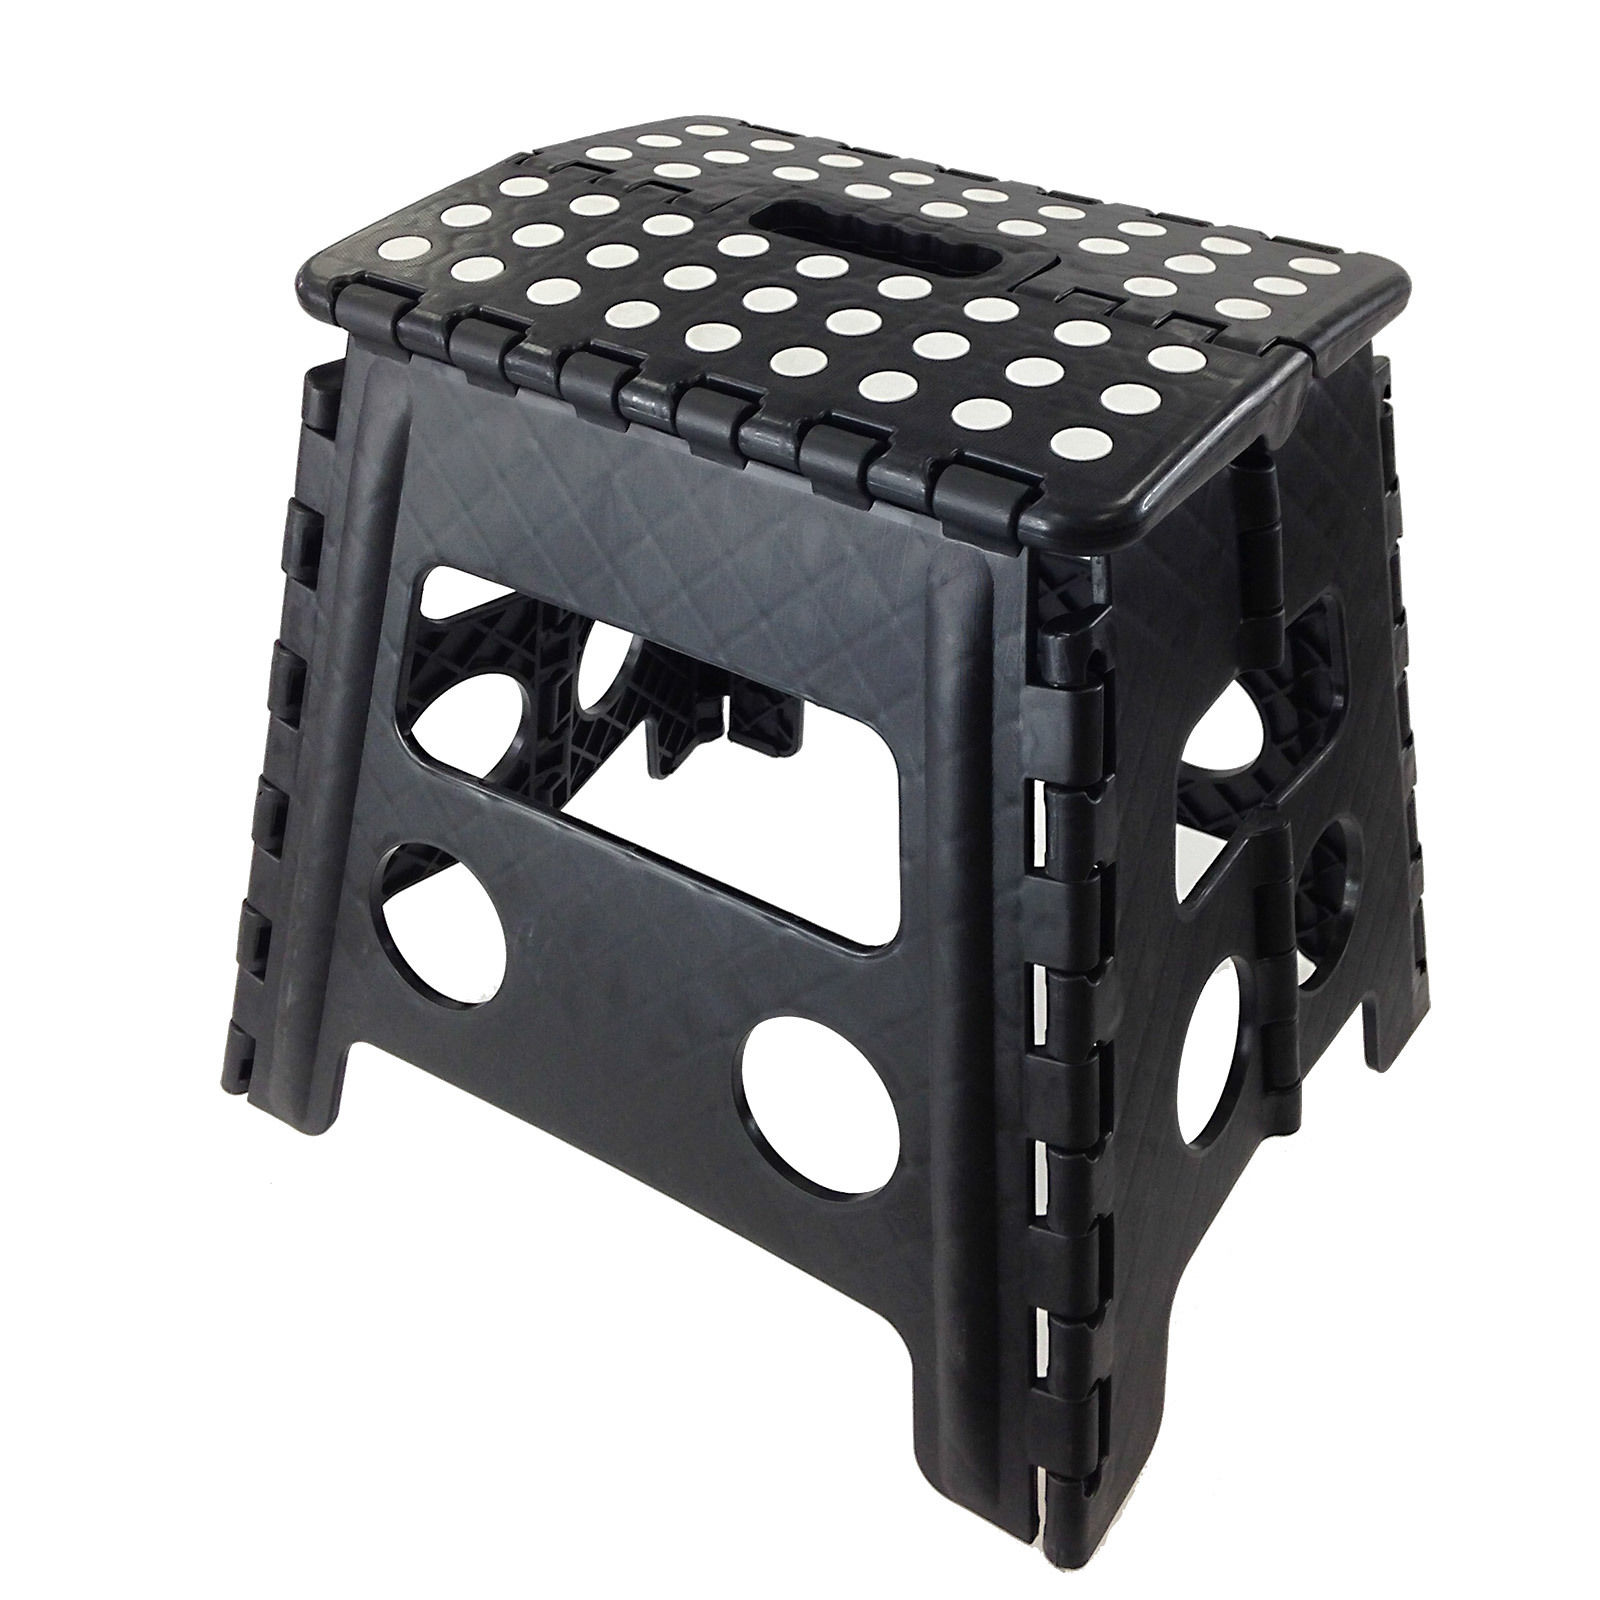 Folding Stool Step Chair Climb Closet High Stand Black